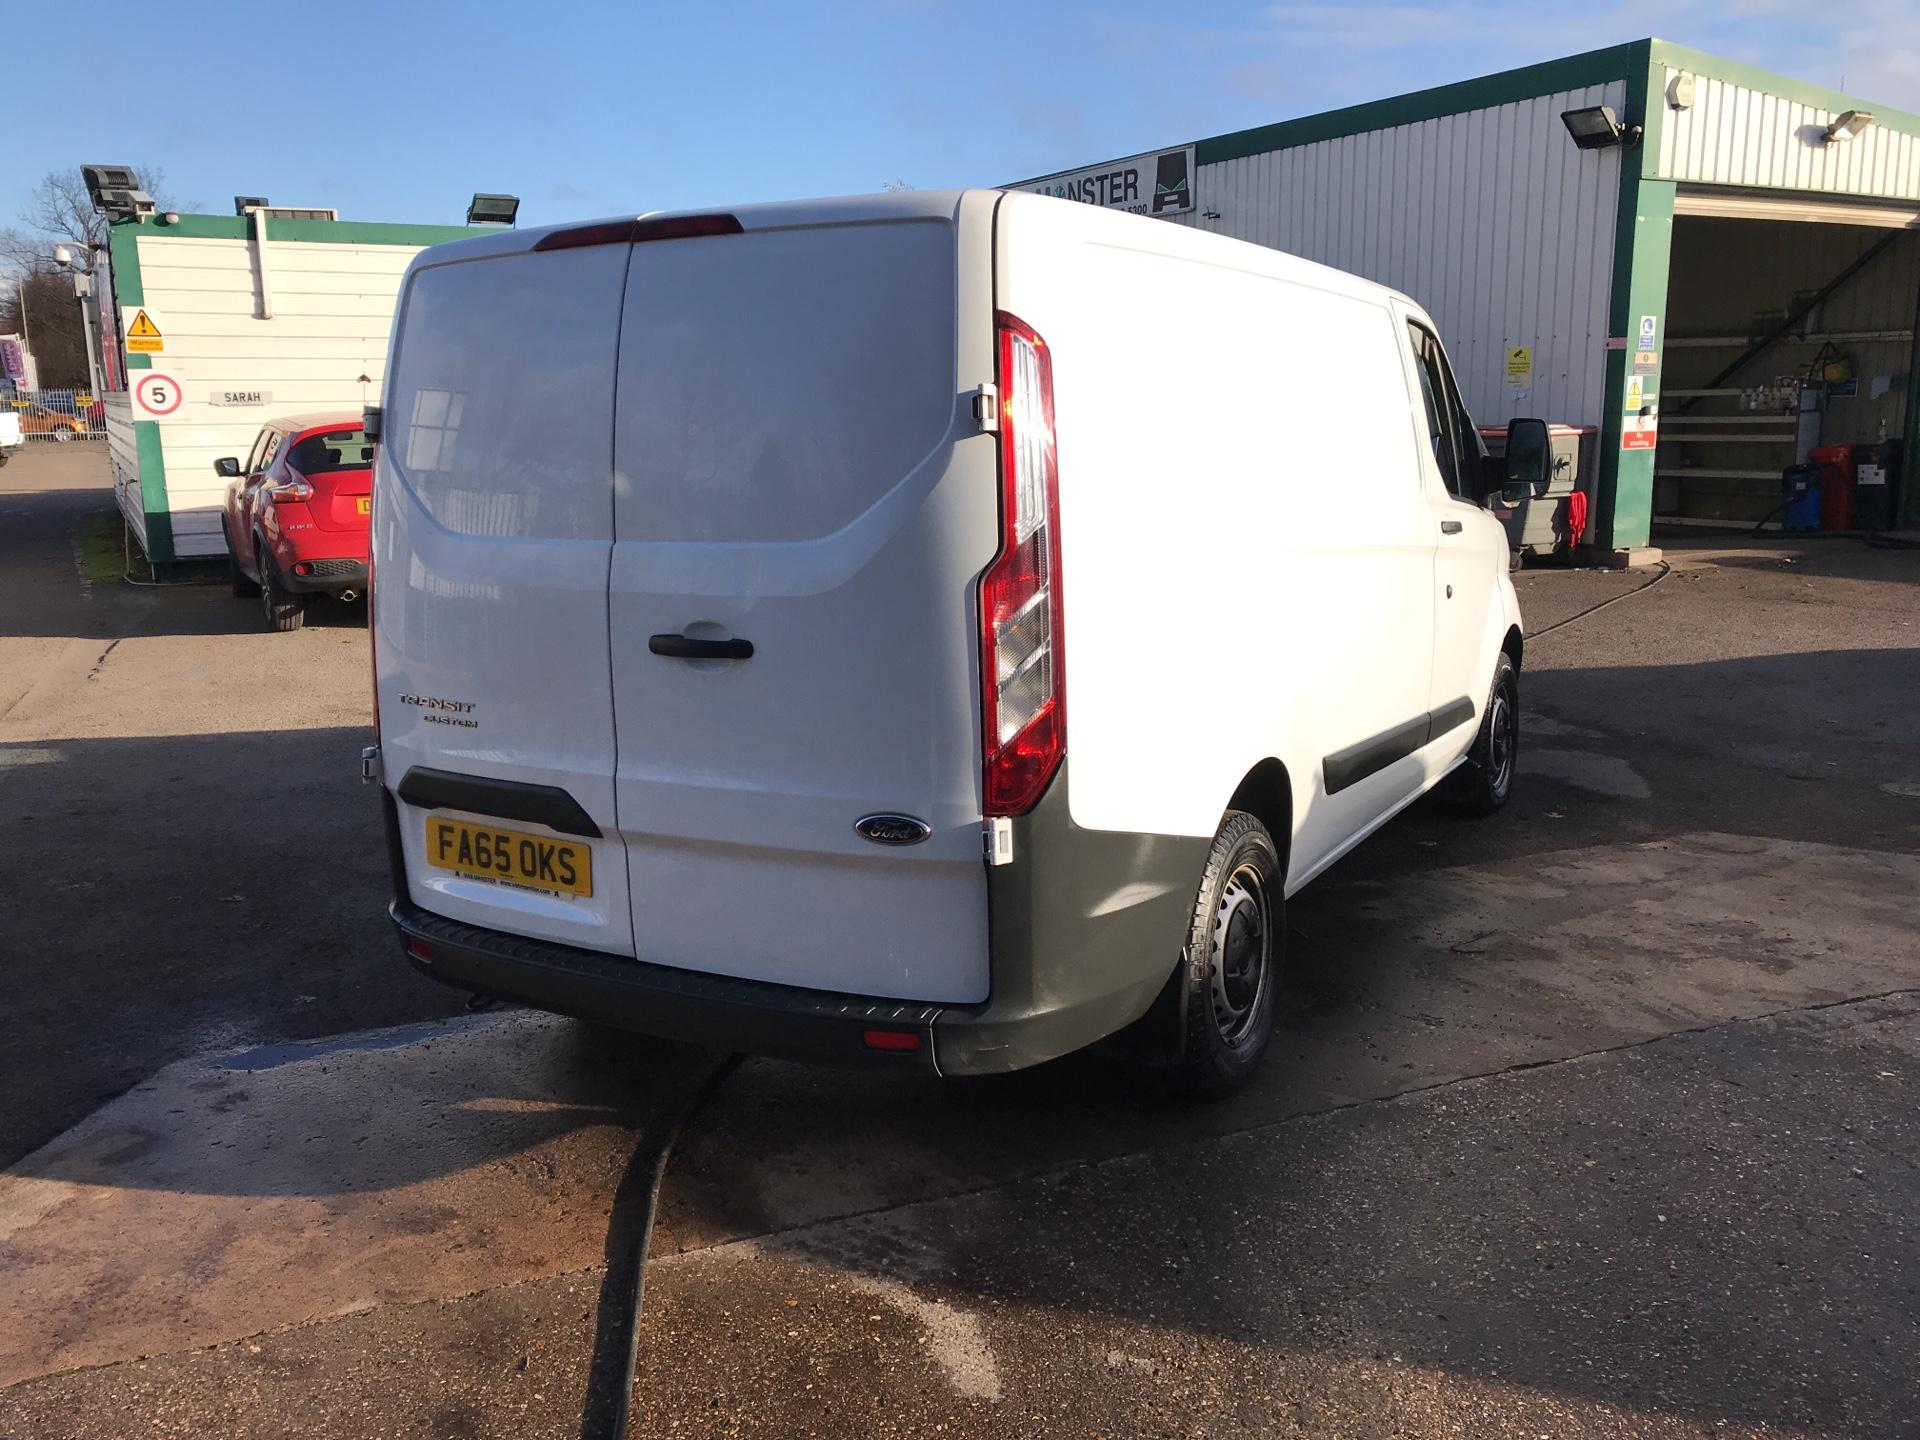 2016 Ford Transit Custom 290 L1 DIESEL FWD 2.2  TDCI 100PS LOW ROOF VAN EURO 5 *VALUE RANGE VEHICLE - CONDITION REFLECTED IN PRICE*  (FA65OKS) Image 3